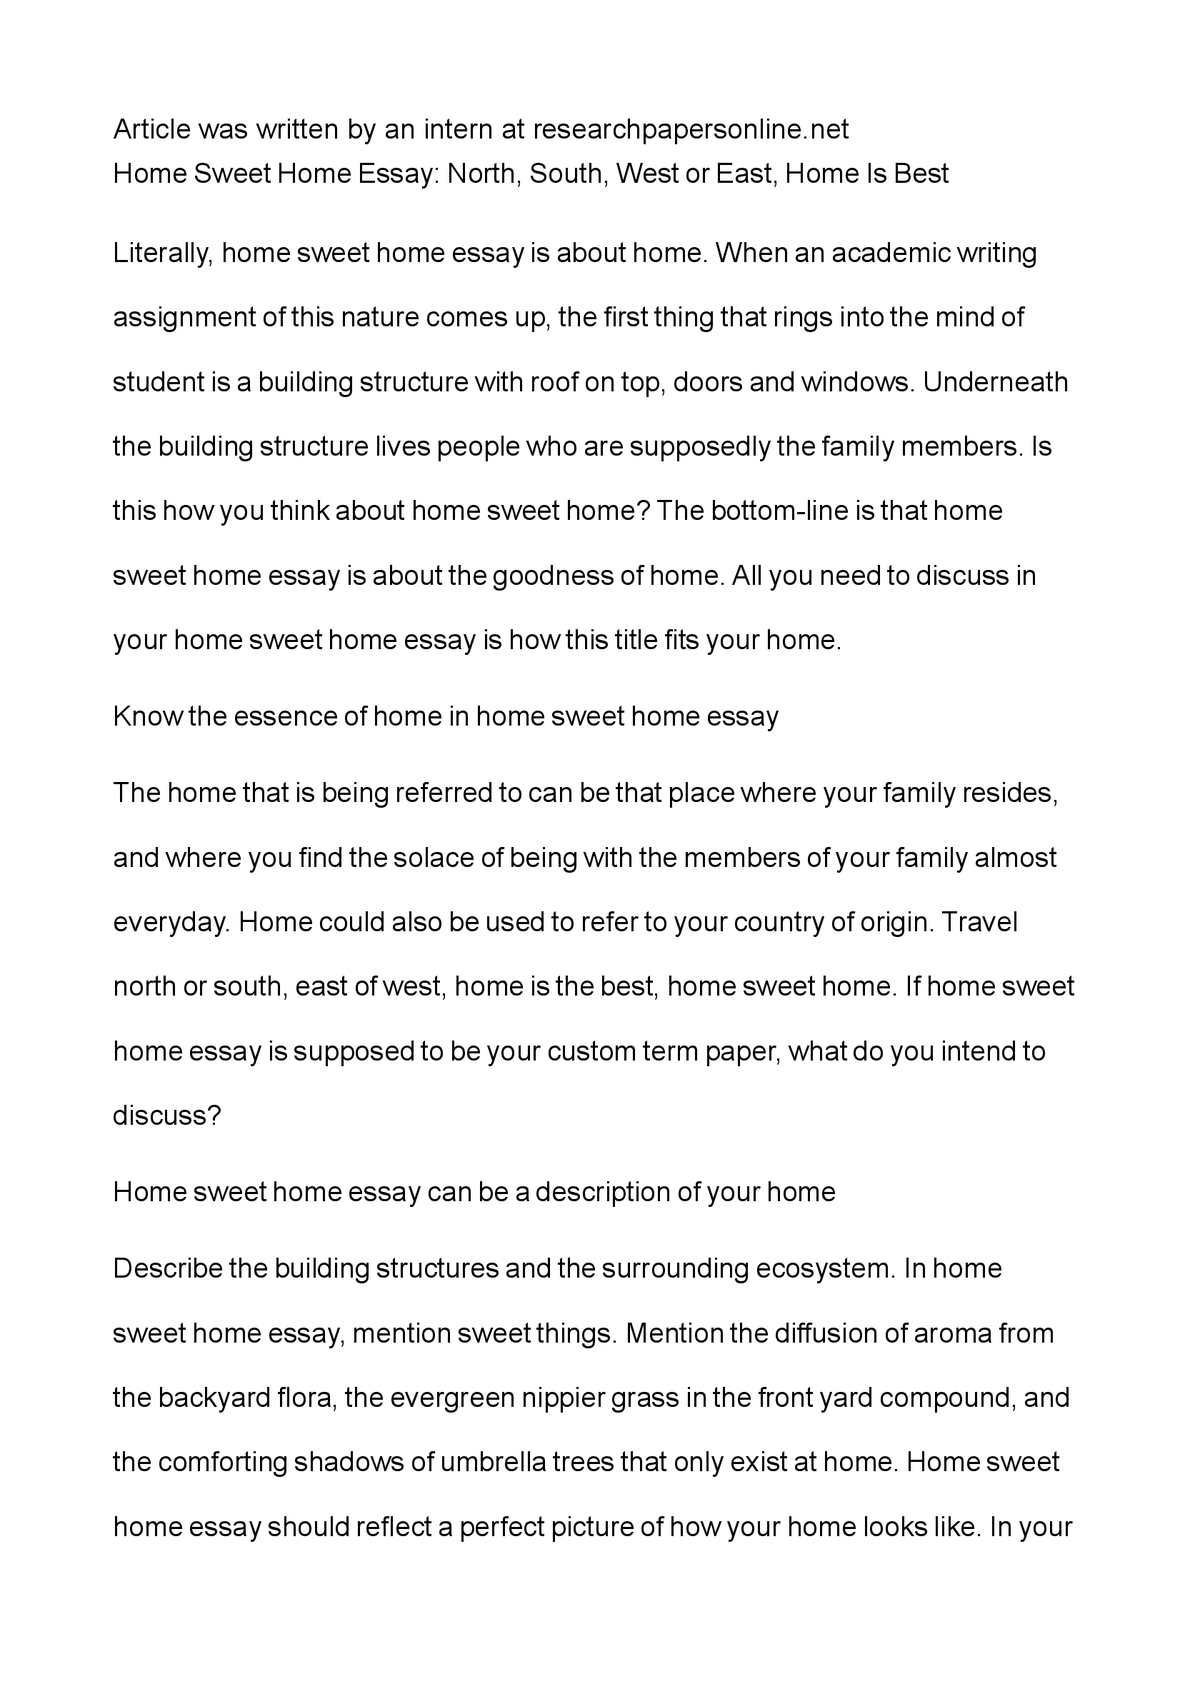 calam atilde copy o home sweet home essay north south west or east home calamatildecopyo home sweet home essay north south west or east home is best